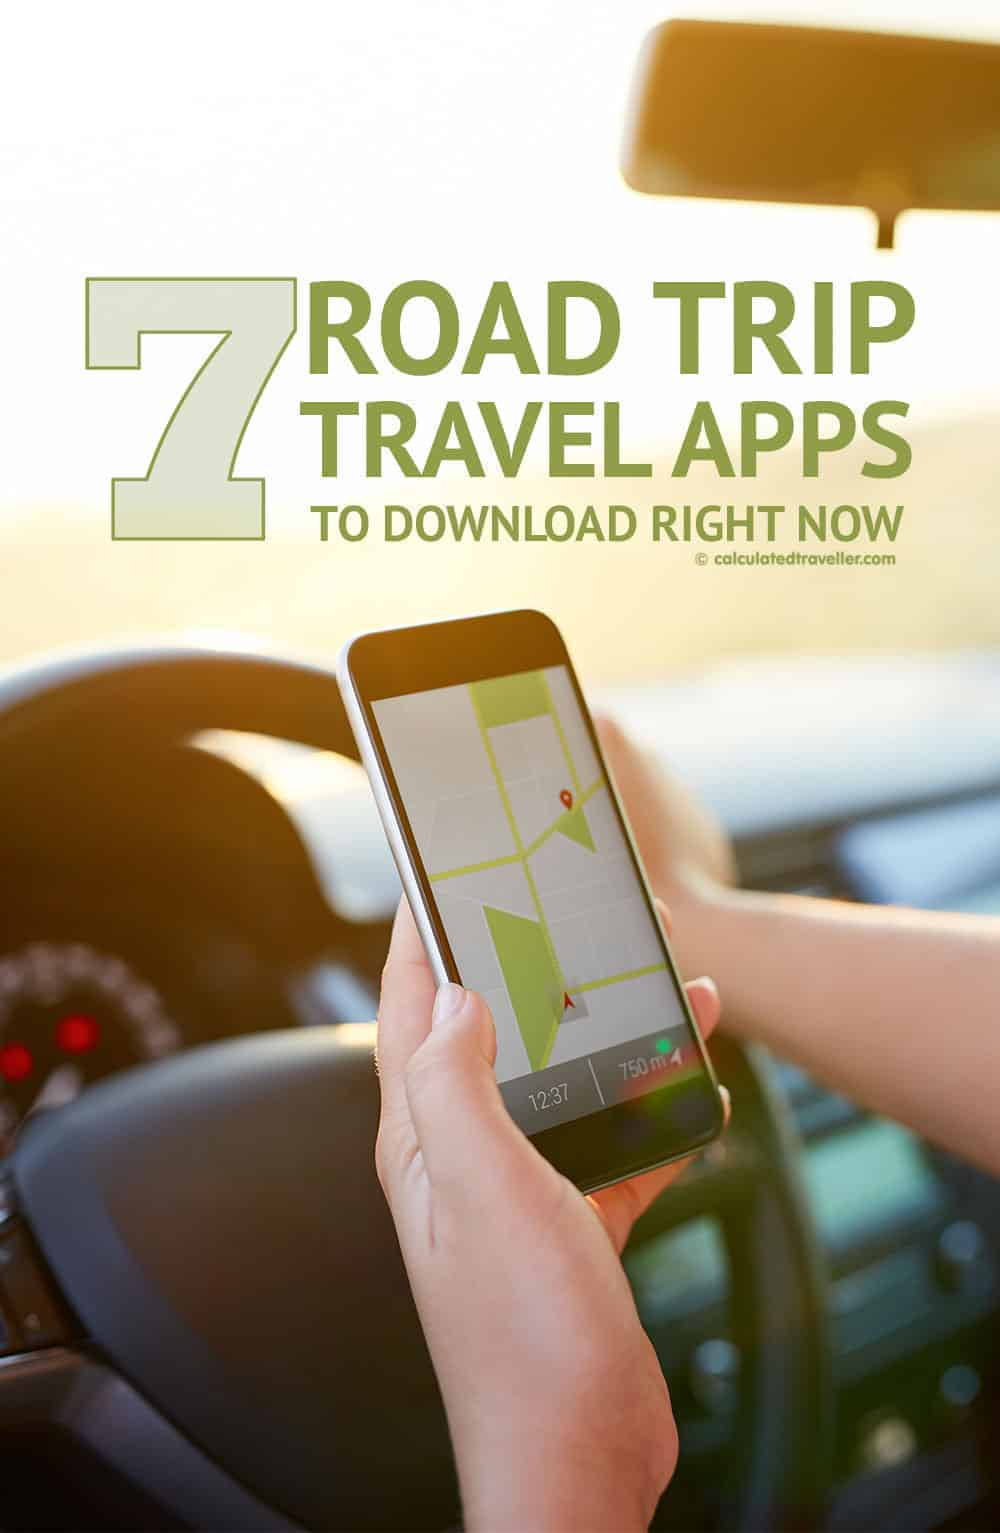 7 Road Trip Travel Apps You Need to Download Right Now by Calculated Traveller | #technology #RoadTrip #travel #app